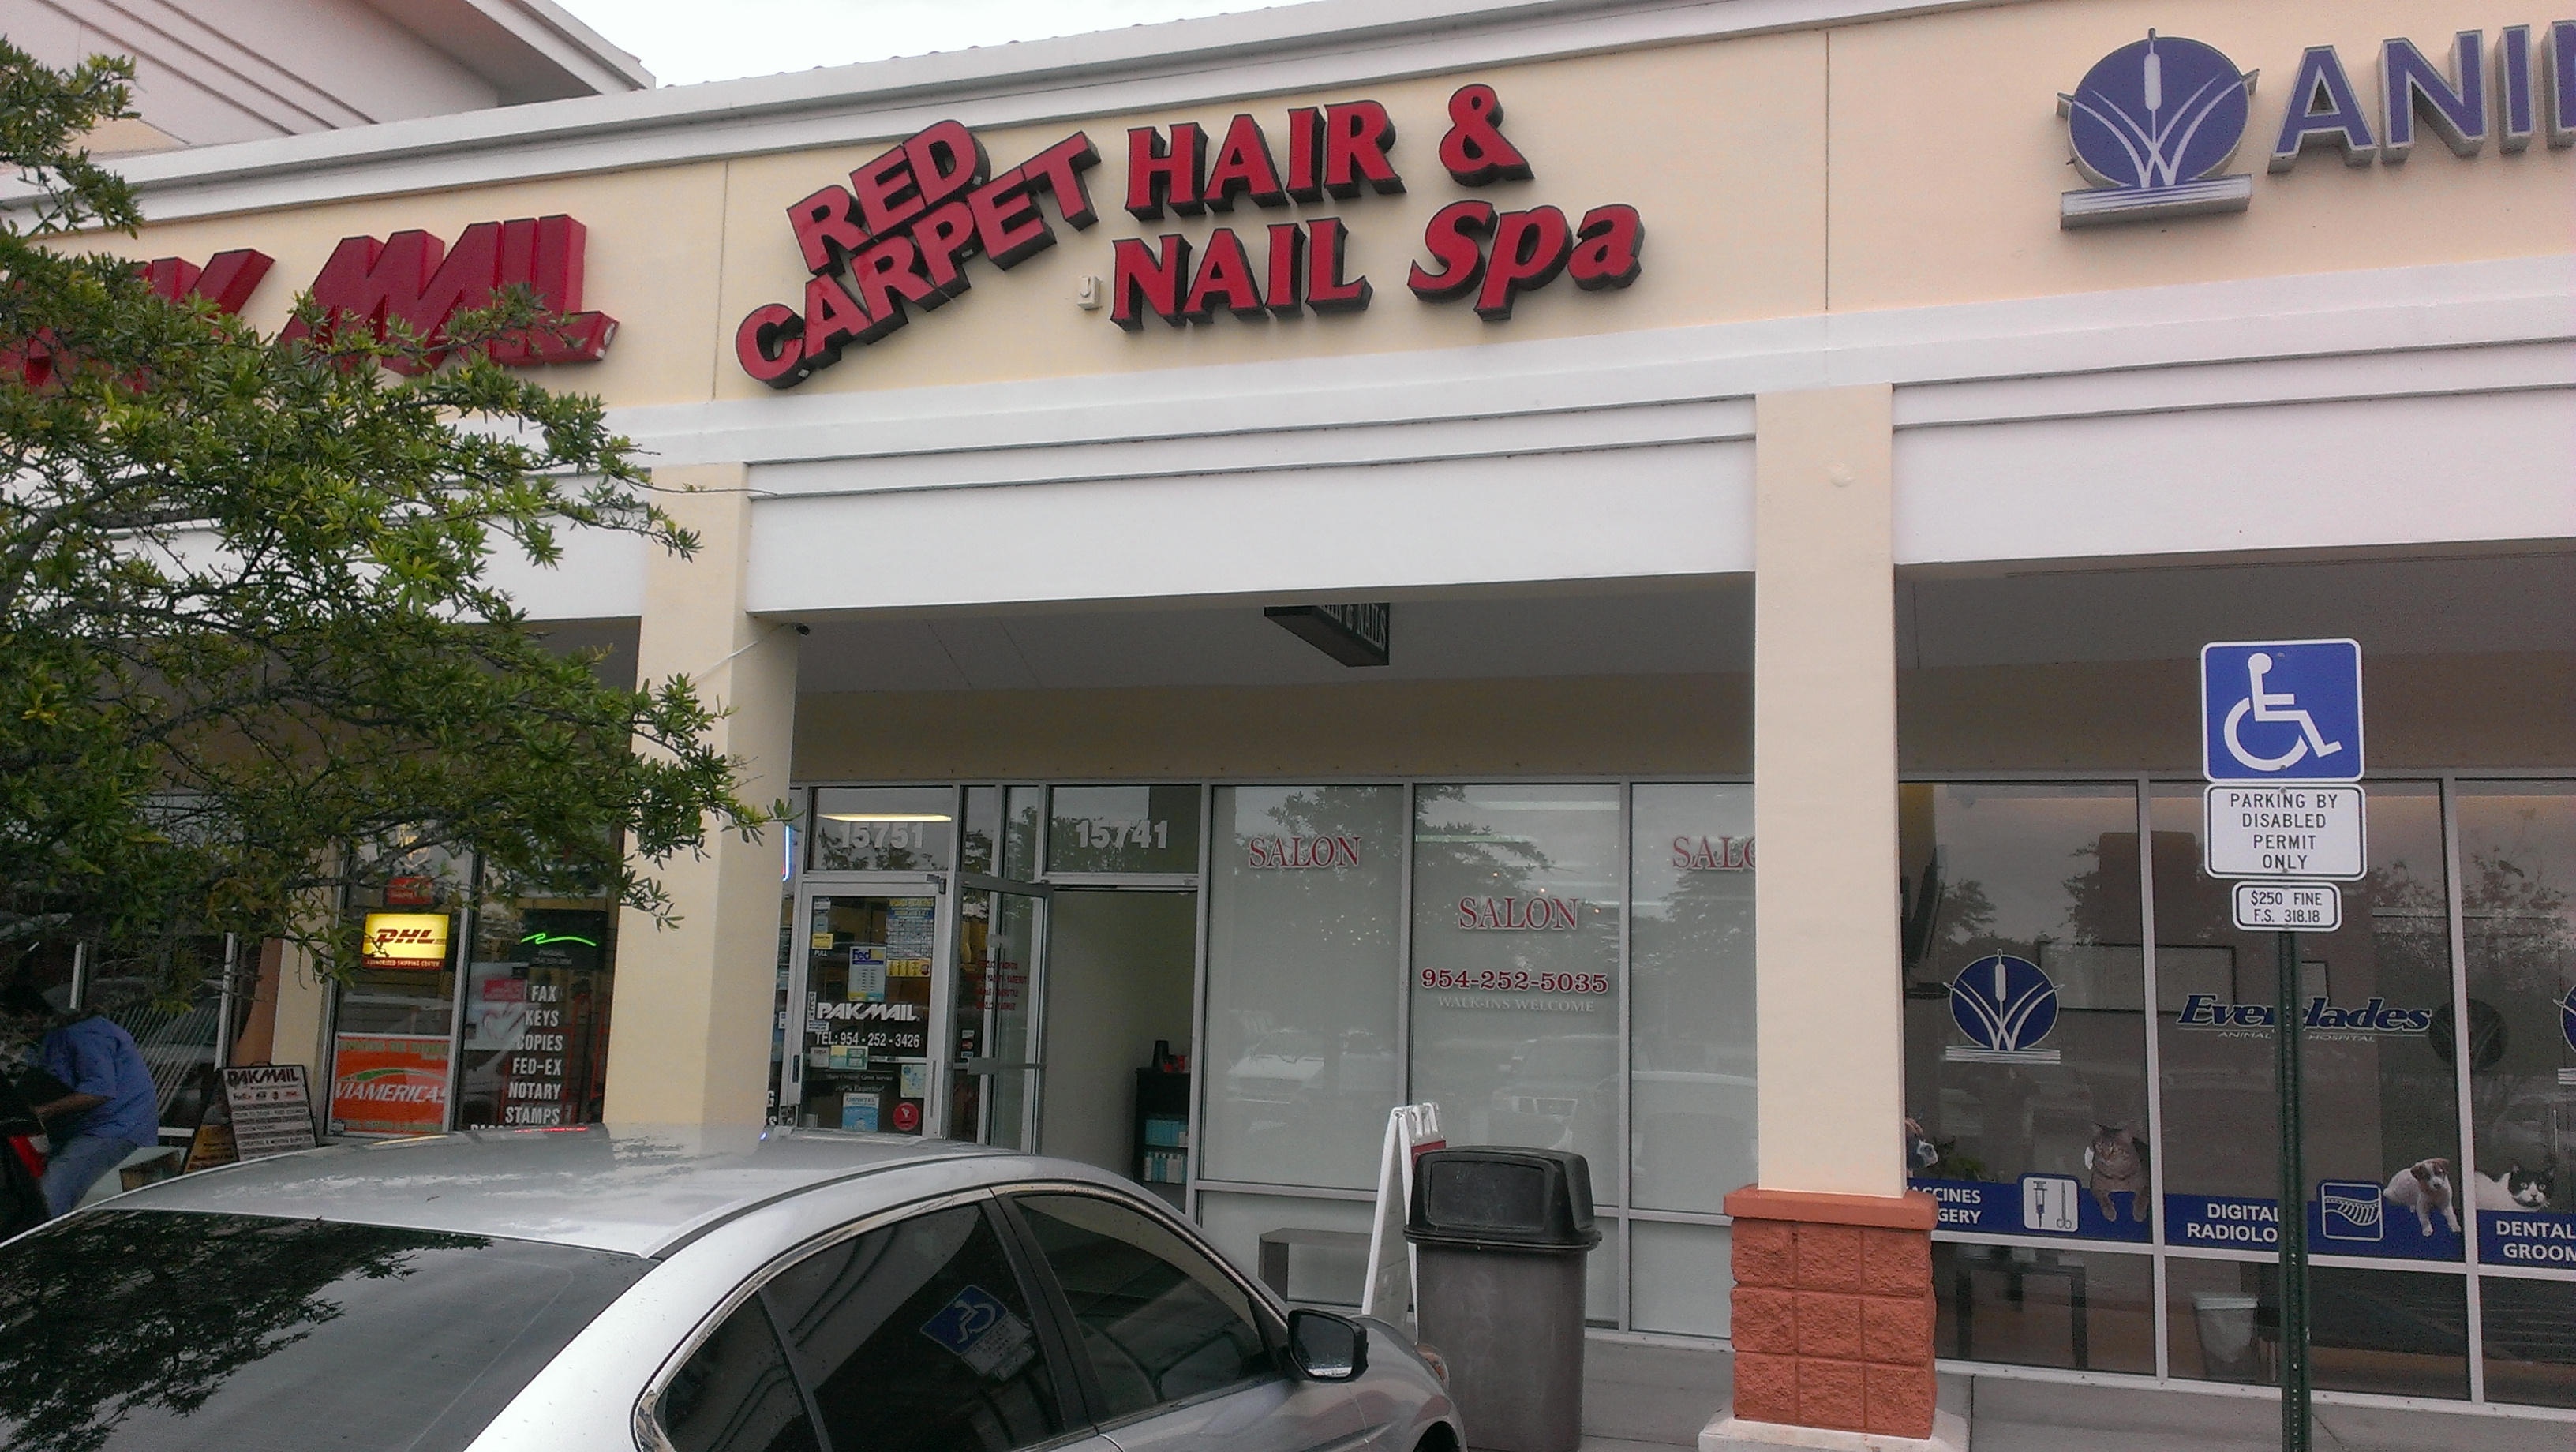 Red Carpet Hair and Nail Spa's New Roller Shades ...